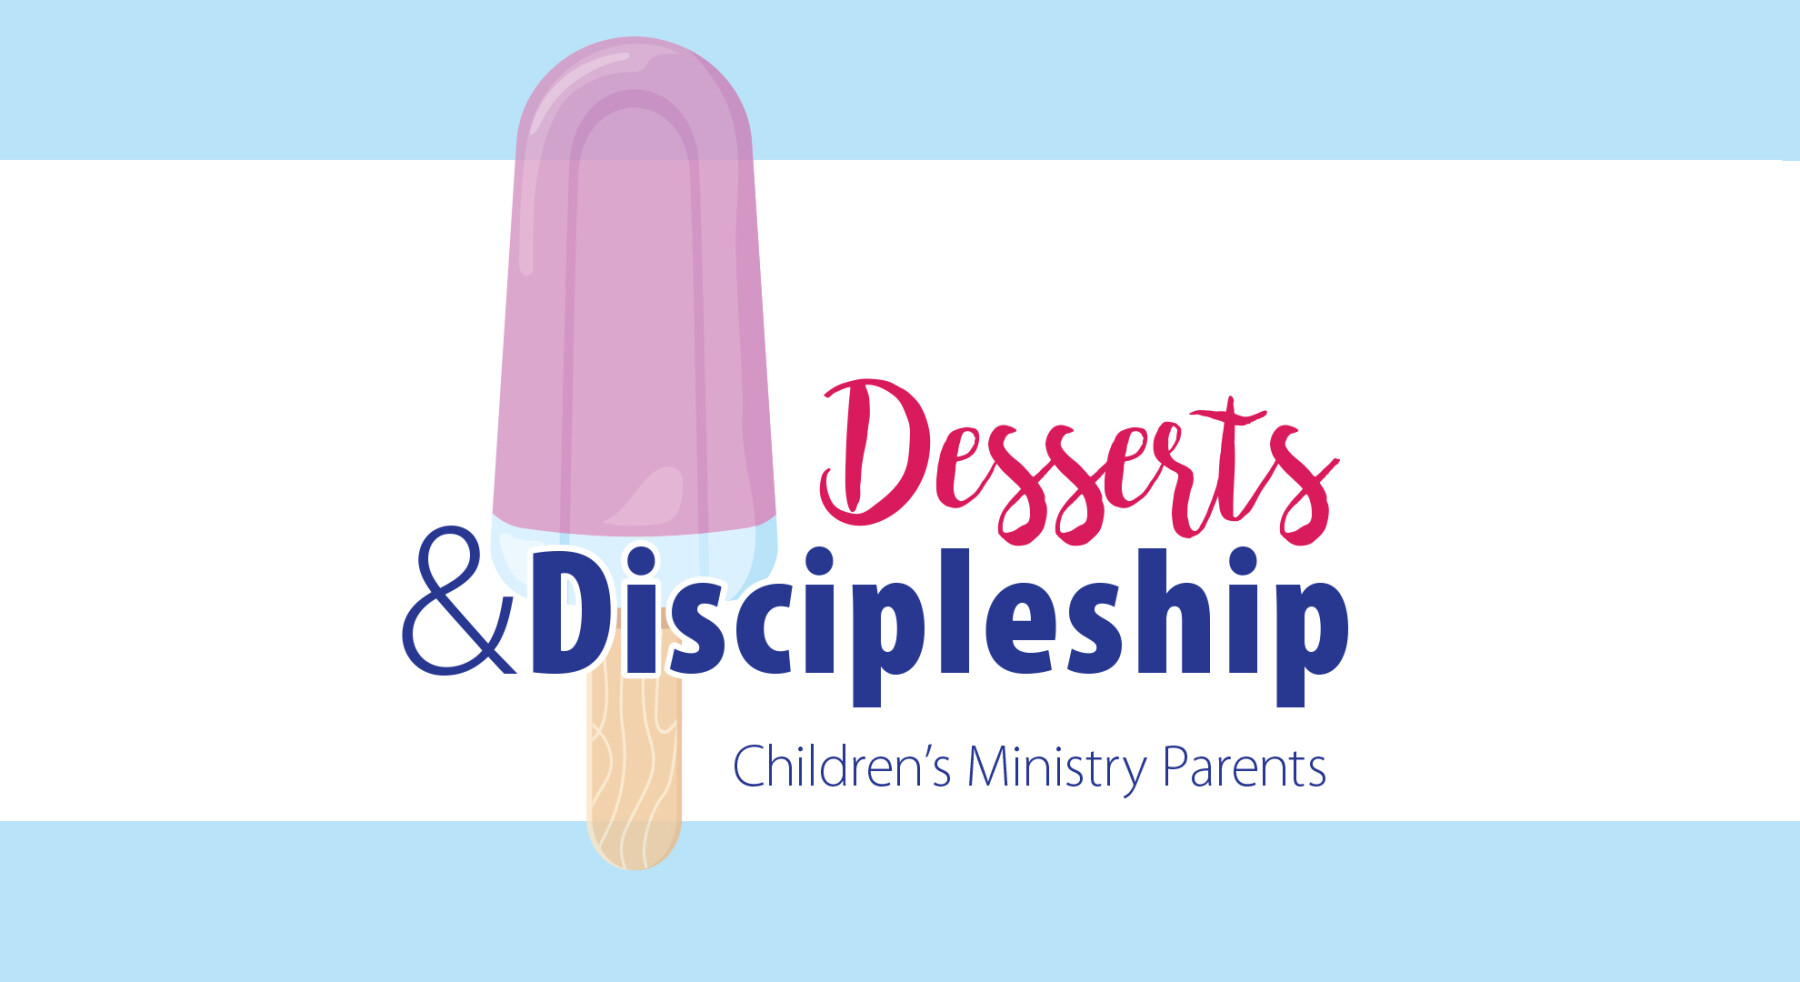 Desserts and Discipleship: Making Summer Count